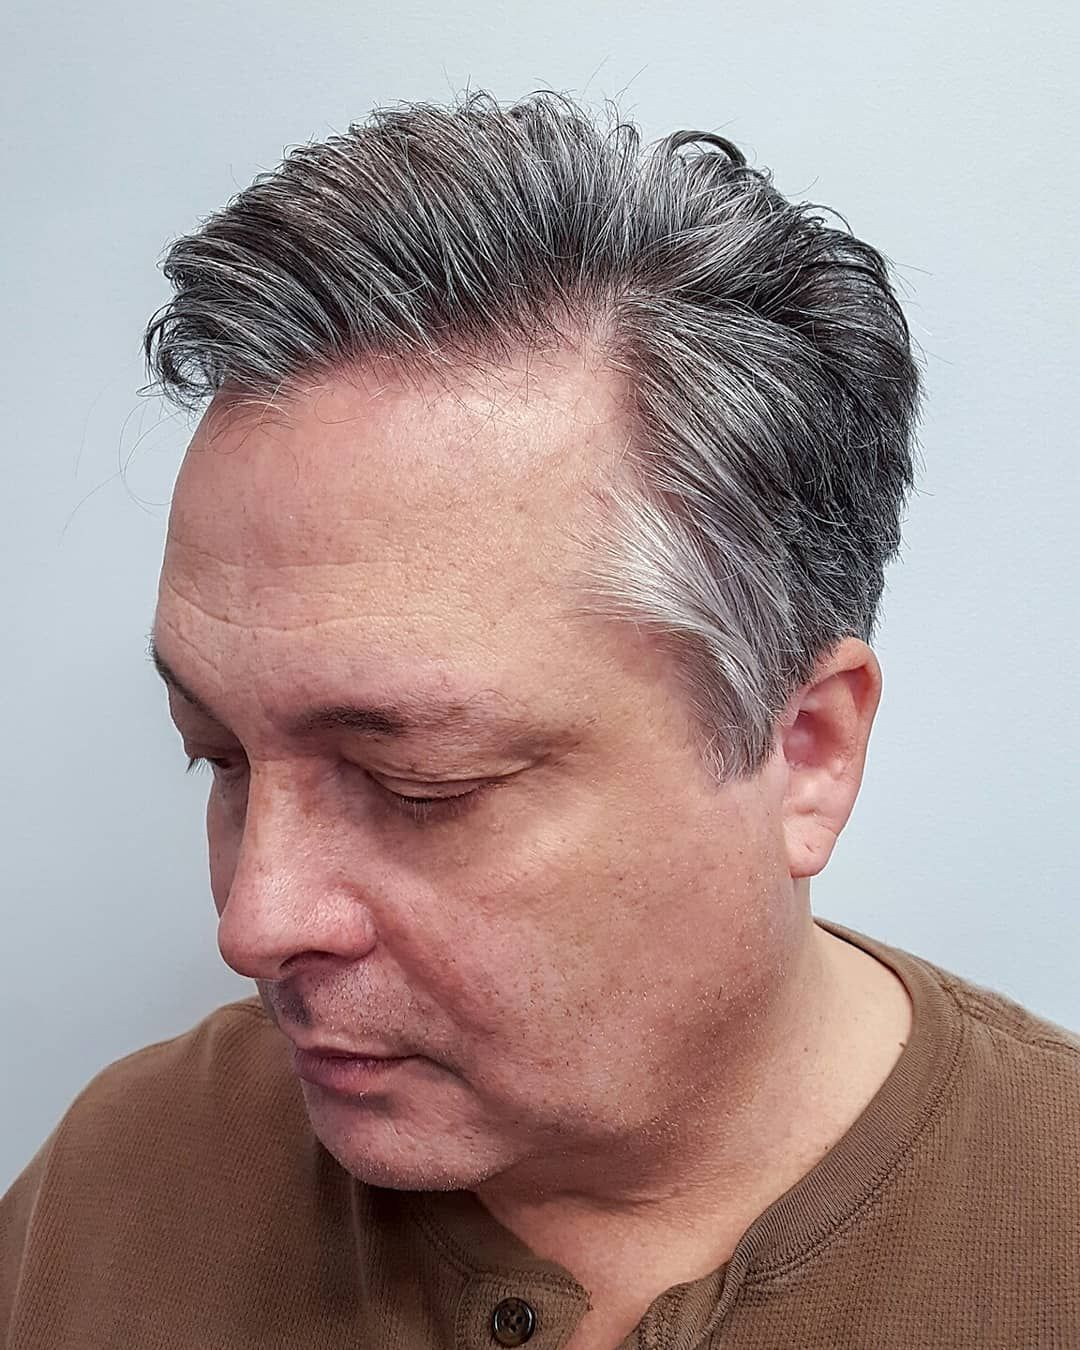 mens haircut, older mens haircut, gray haircut, 50 year old